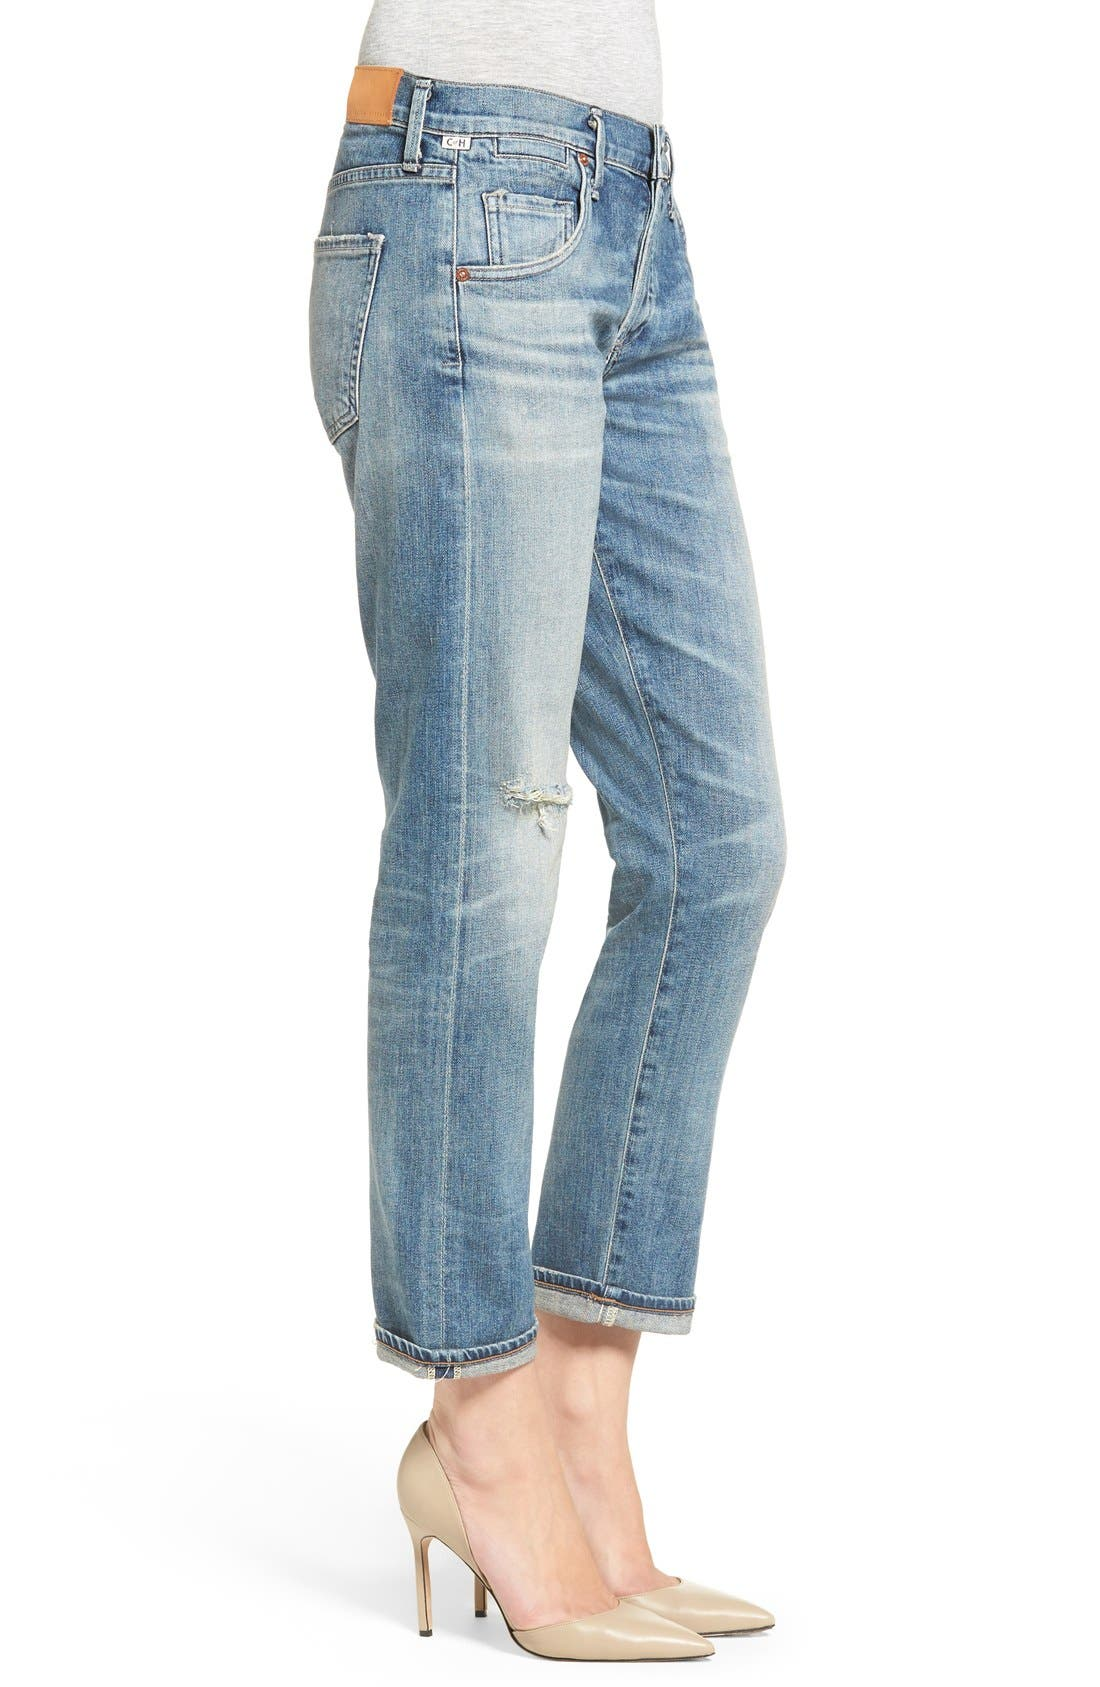 CITIZENS OF HUMANITY,                             'Emerson' Ripped Slim Boyfriend Jeans,                             Alternate thumbnail 3, color,                             469